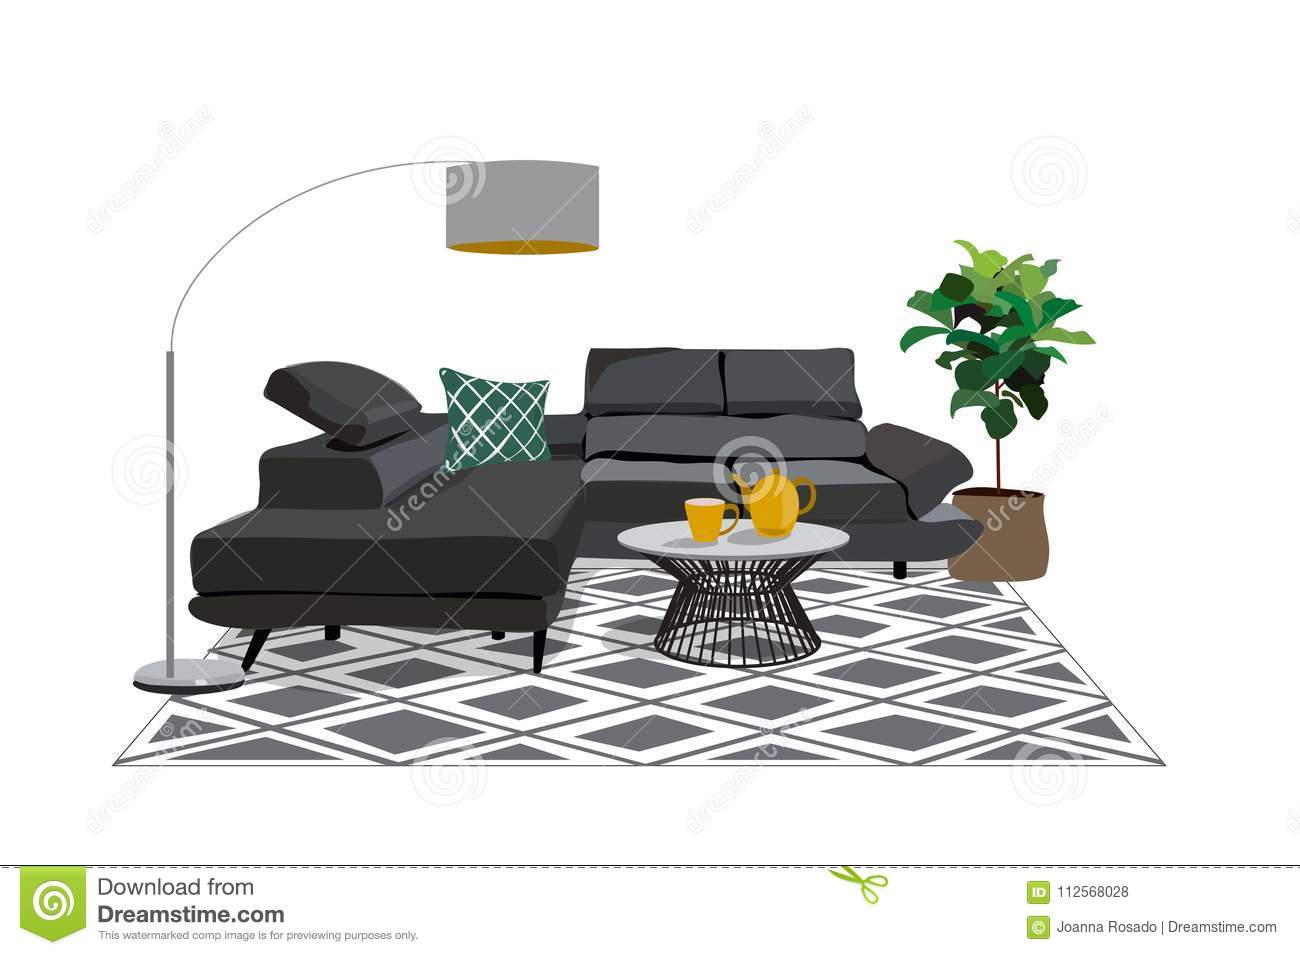 ed98ddd5b0efd Living room with a yellow sofa and purple pillows. There is a table with  yellow tulips on a window background in the image. There is also a room  flower and ...